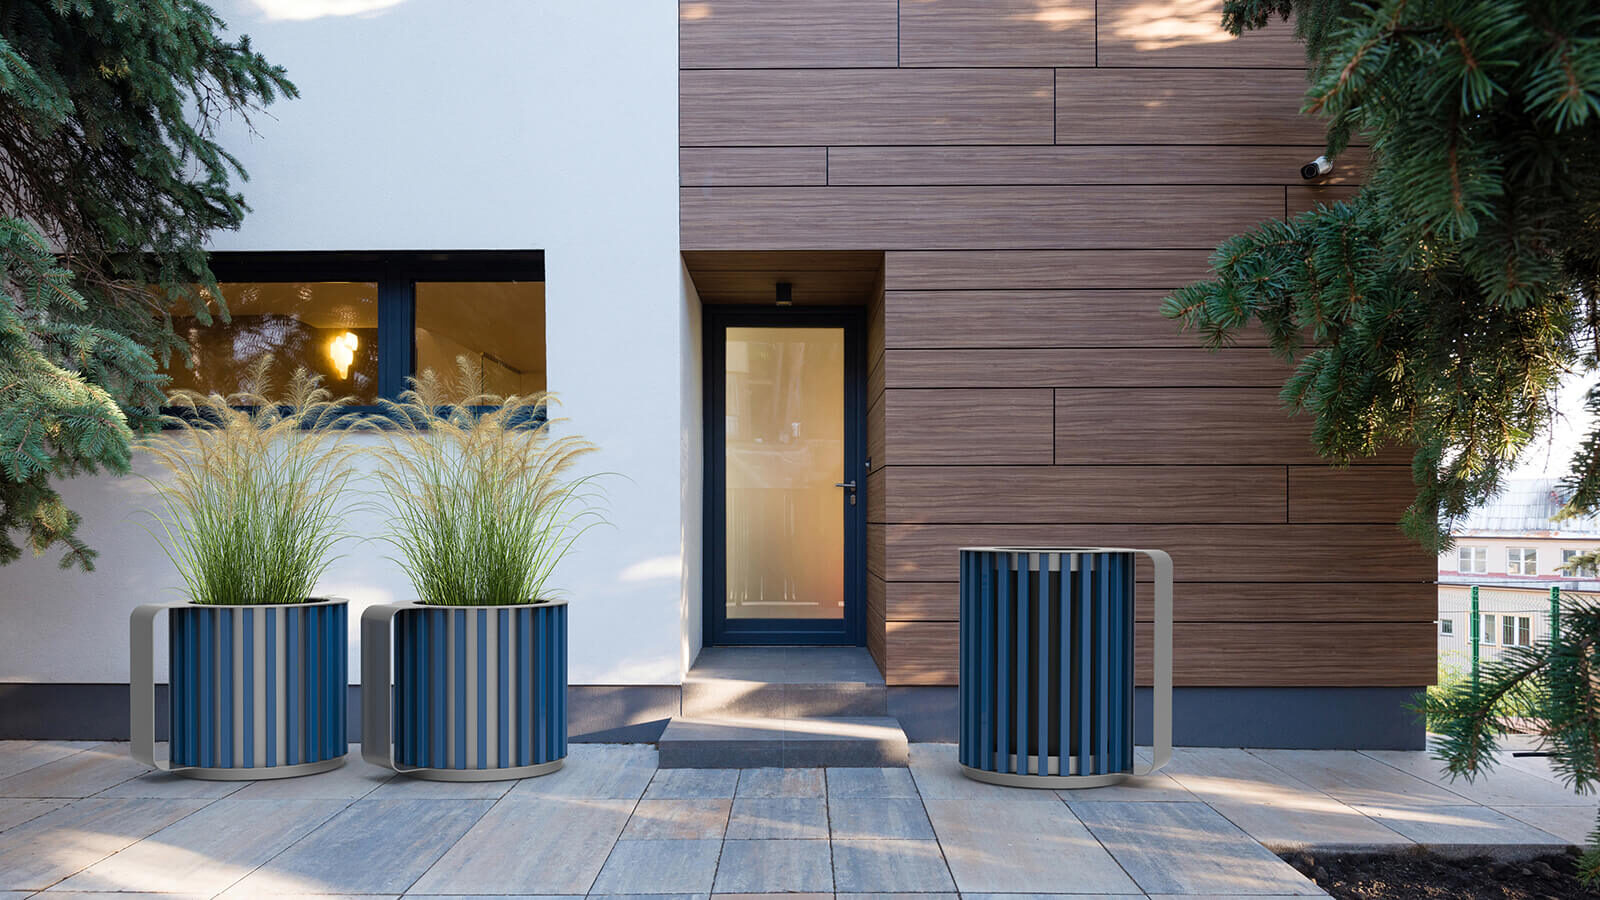 Navy blue Mug planters and garbage bin in front of a white and wood building